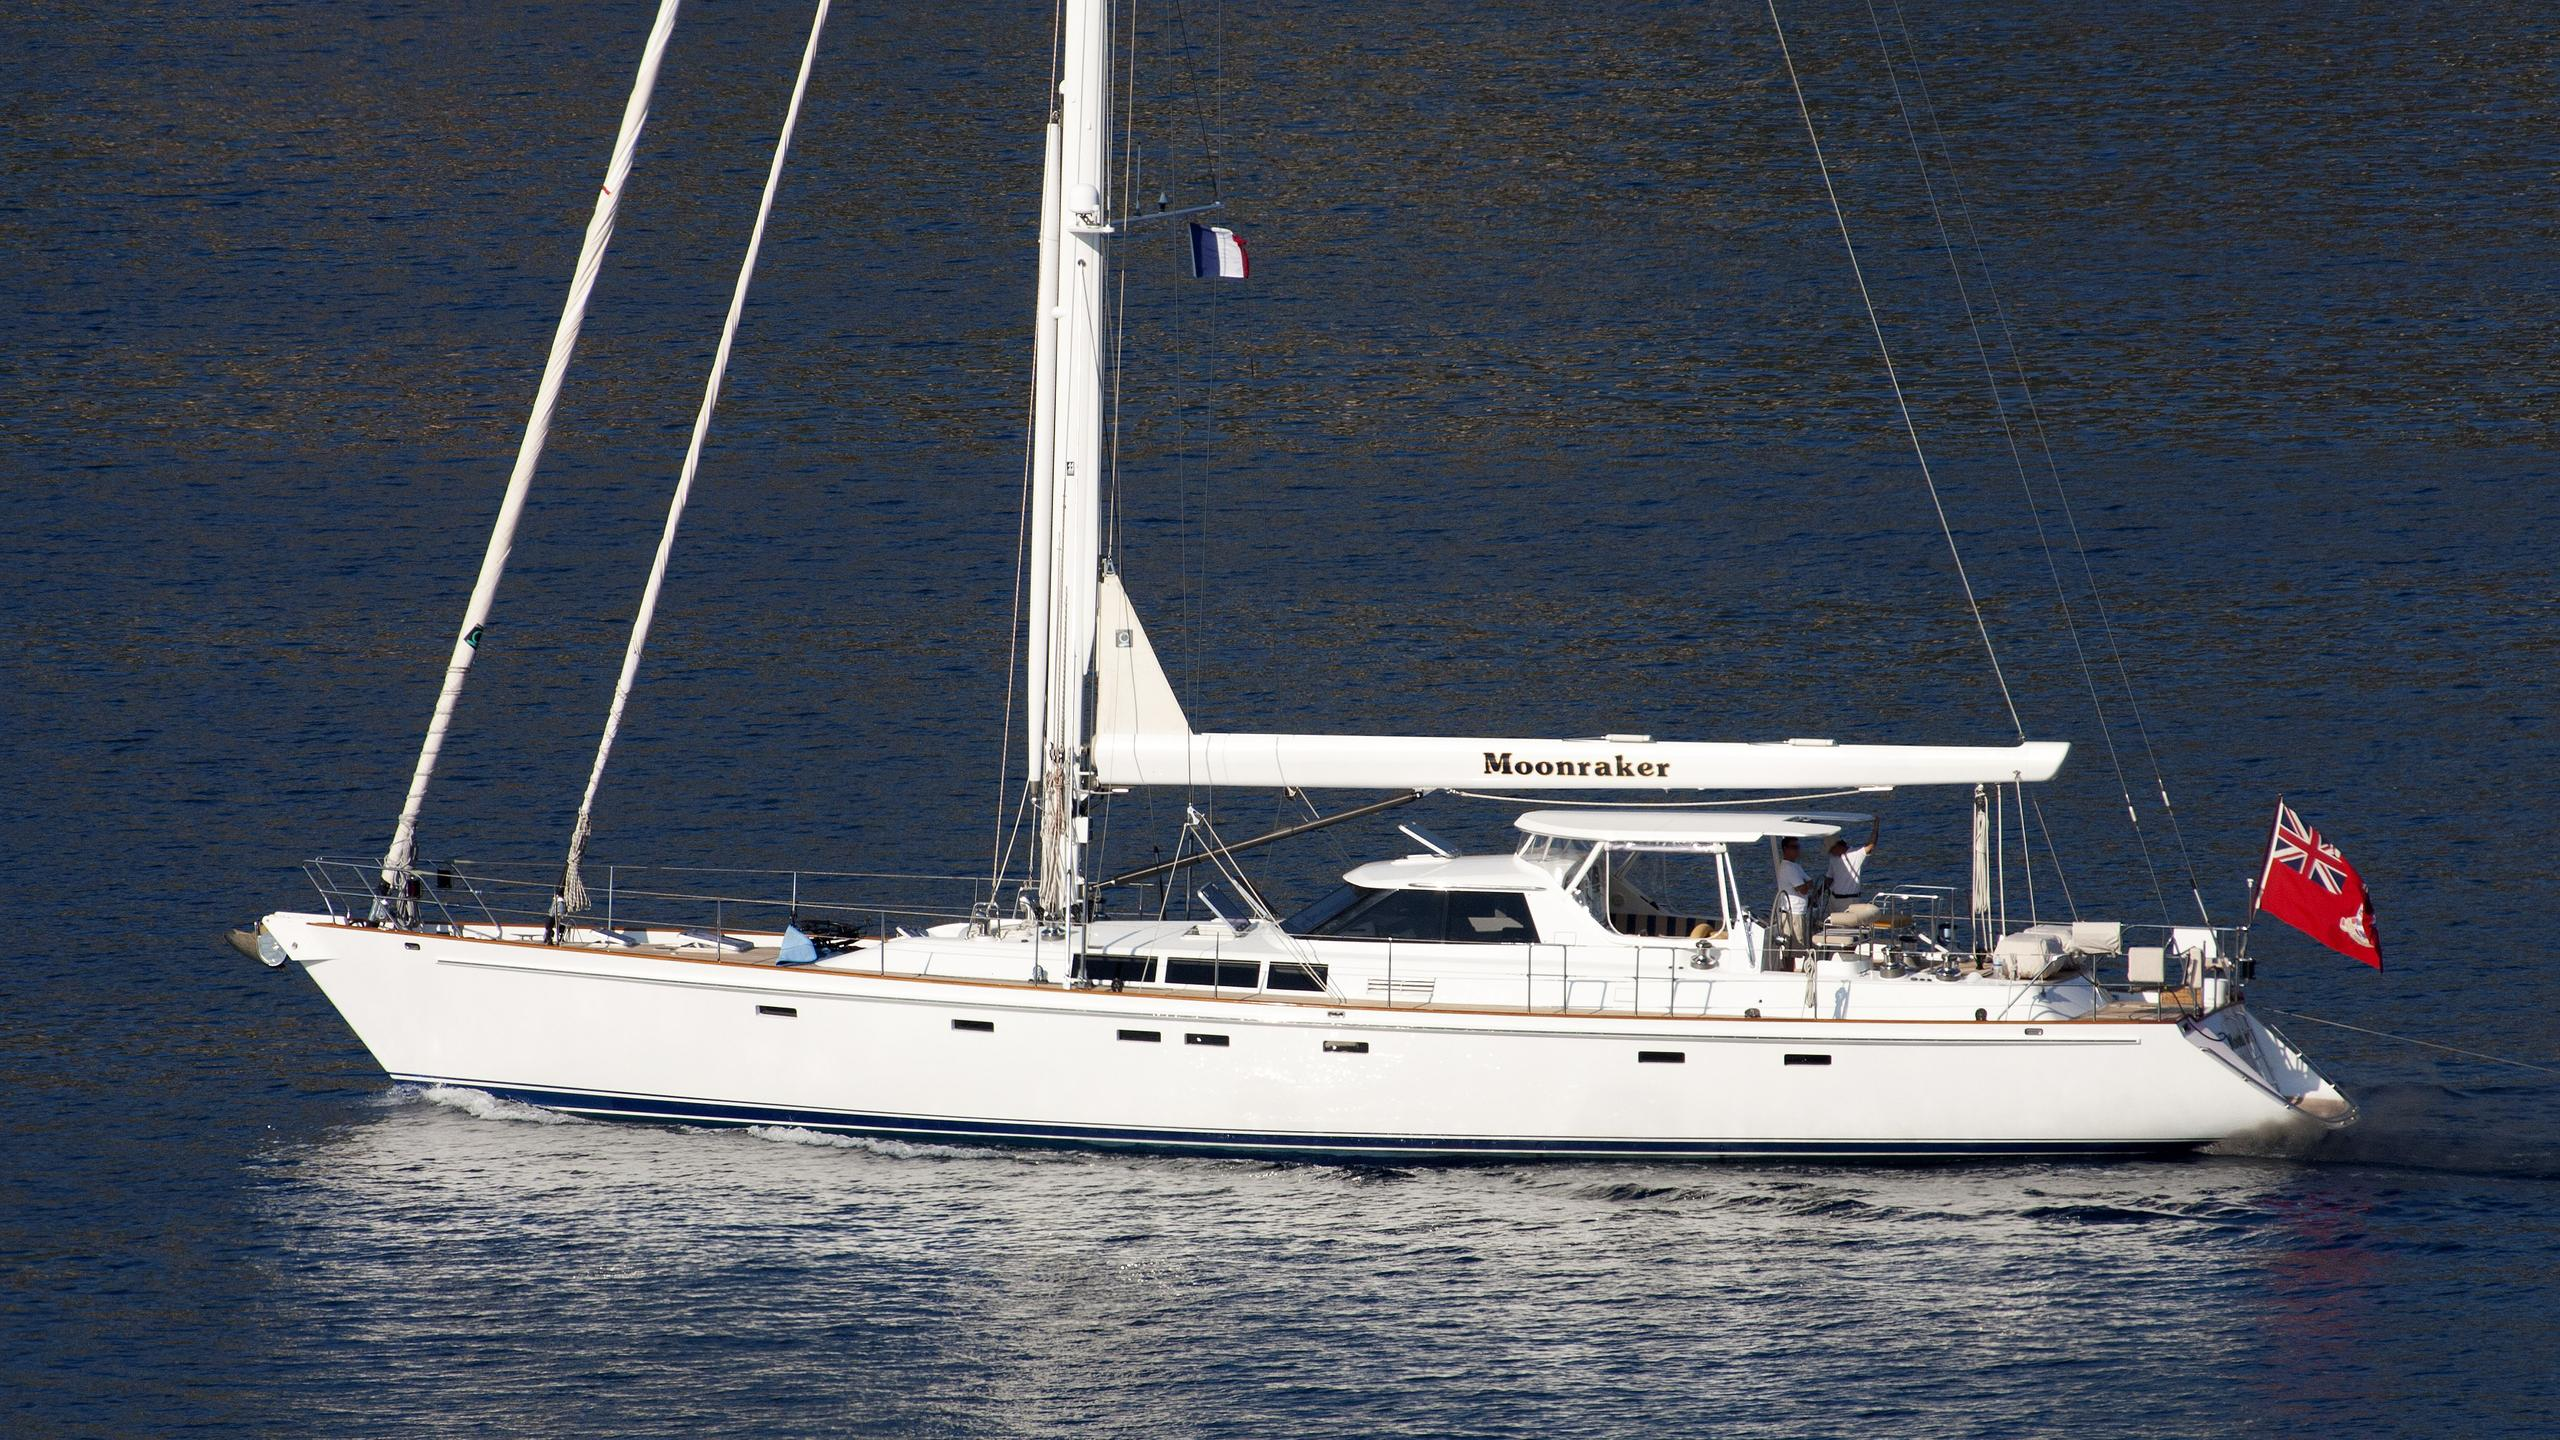 moonraker-sailing-yacht-kelly-archer-2000-24m-profile